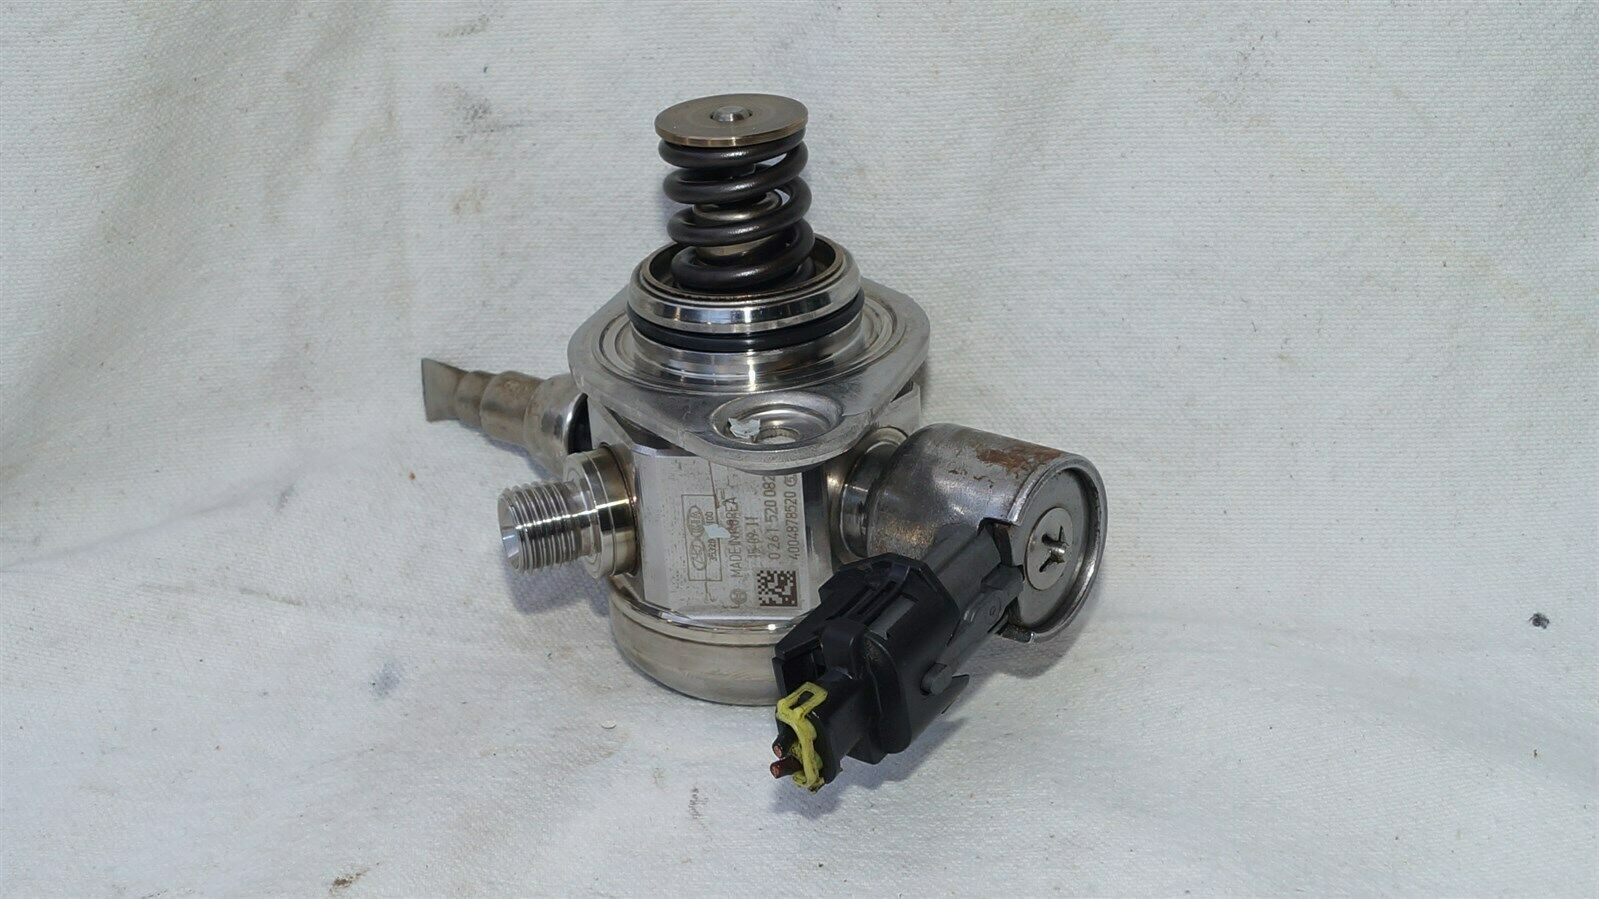 KIA Hyundai GDI Gas Direct Injection High Pressure Fuel Pump HPFP 35320-2B100